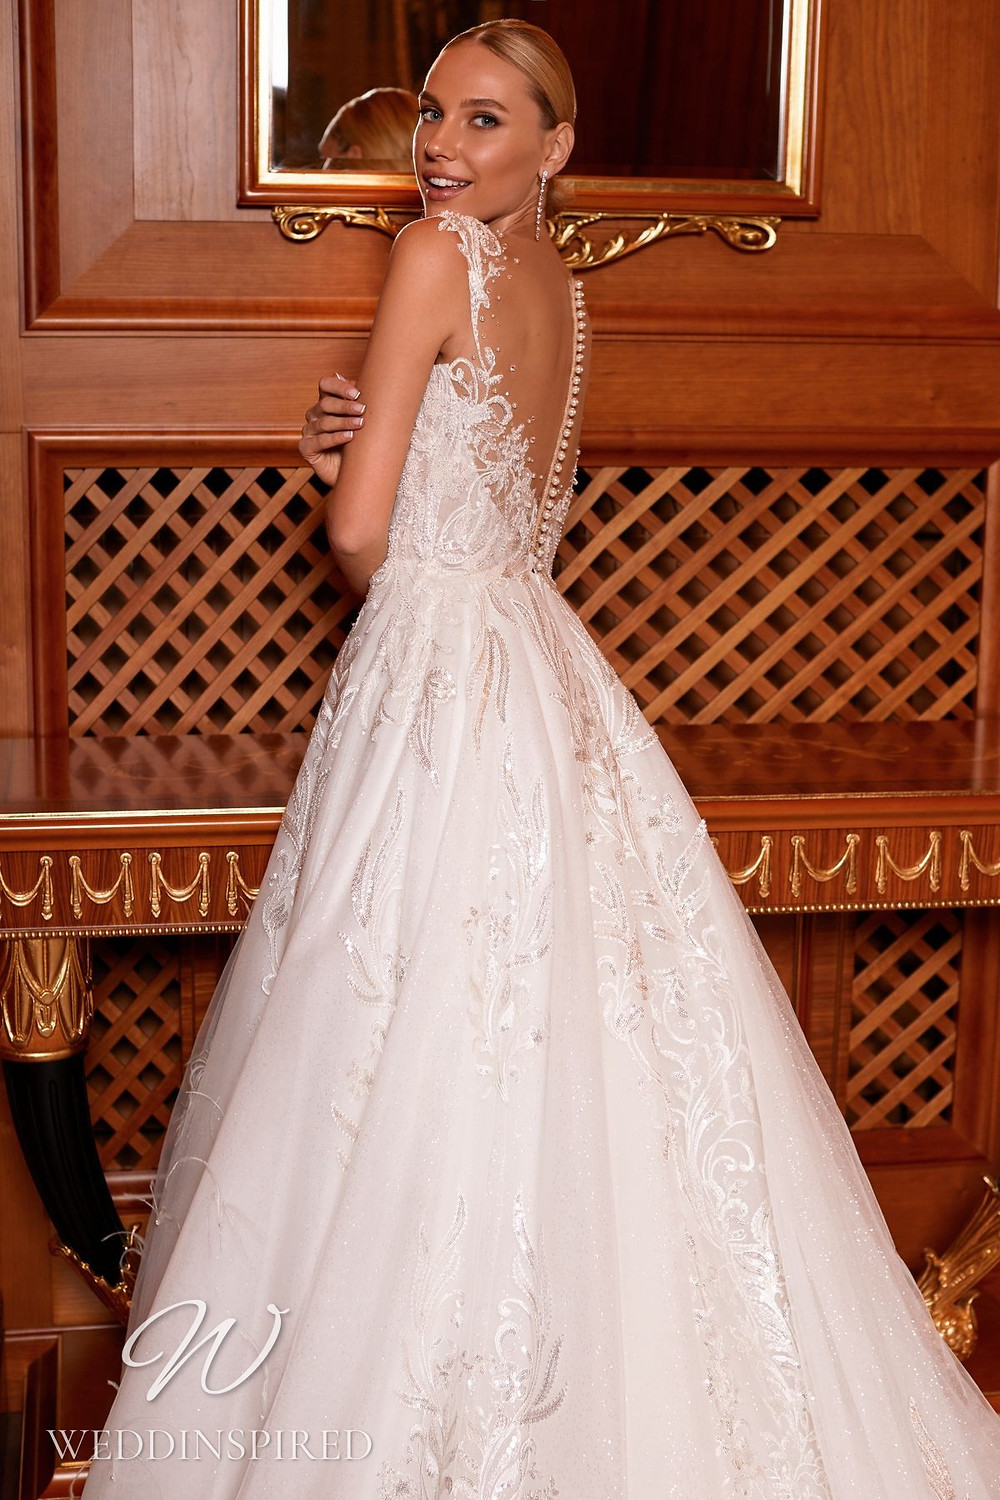 A Pollardi 2021 backless lace and tulle A-line wedding dress